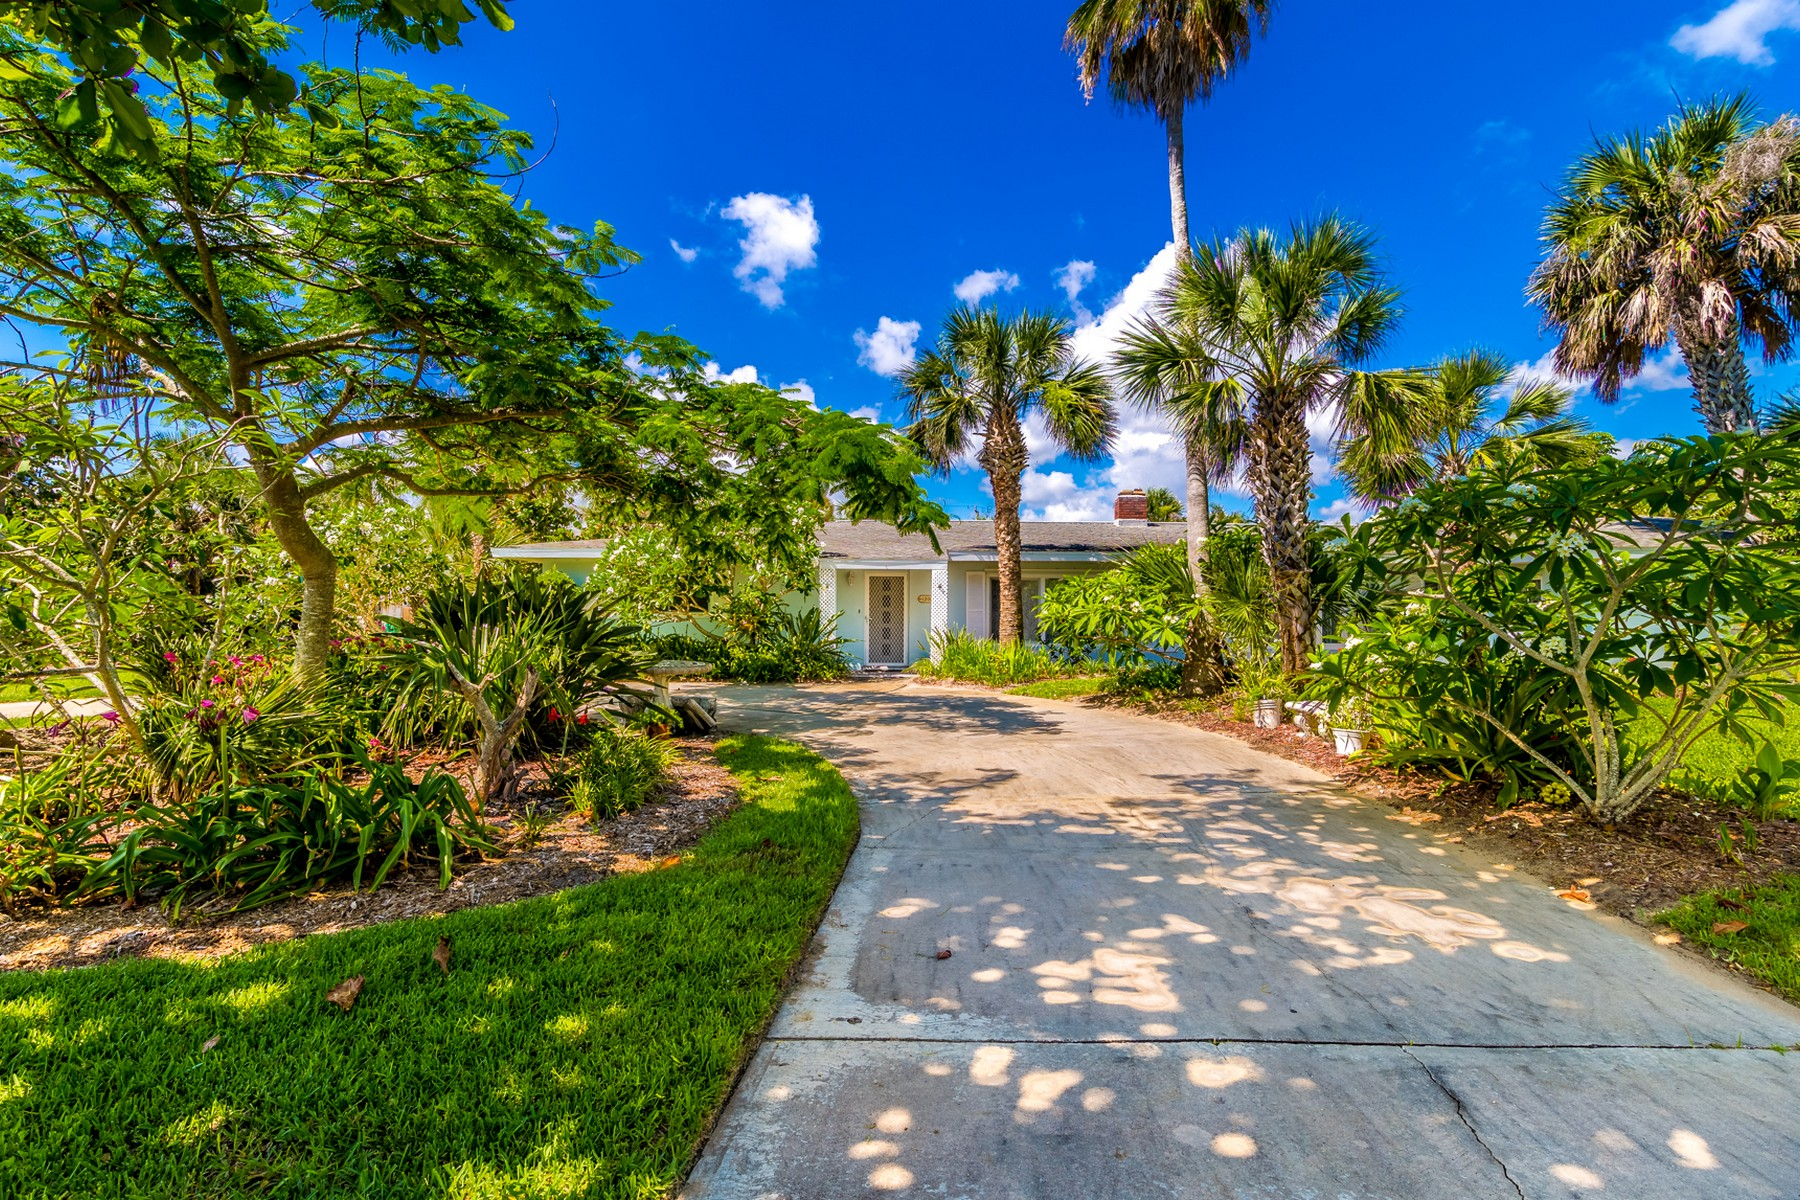 Additional photo for property listing at Spacious Home in Indialantic by the Sea 1200  S Shannon Ave S Indialantic, Florida 32903 United States